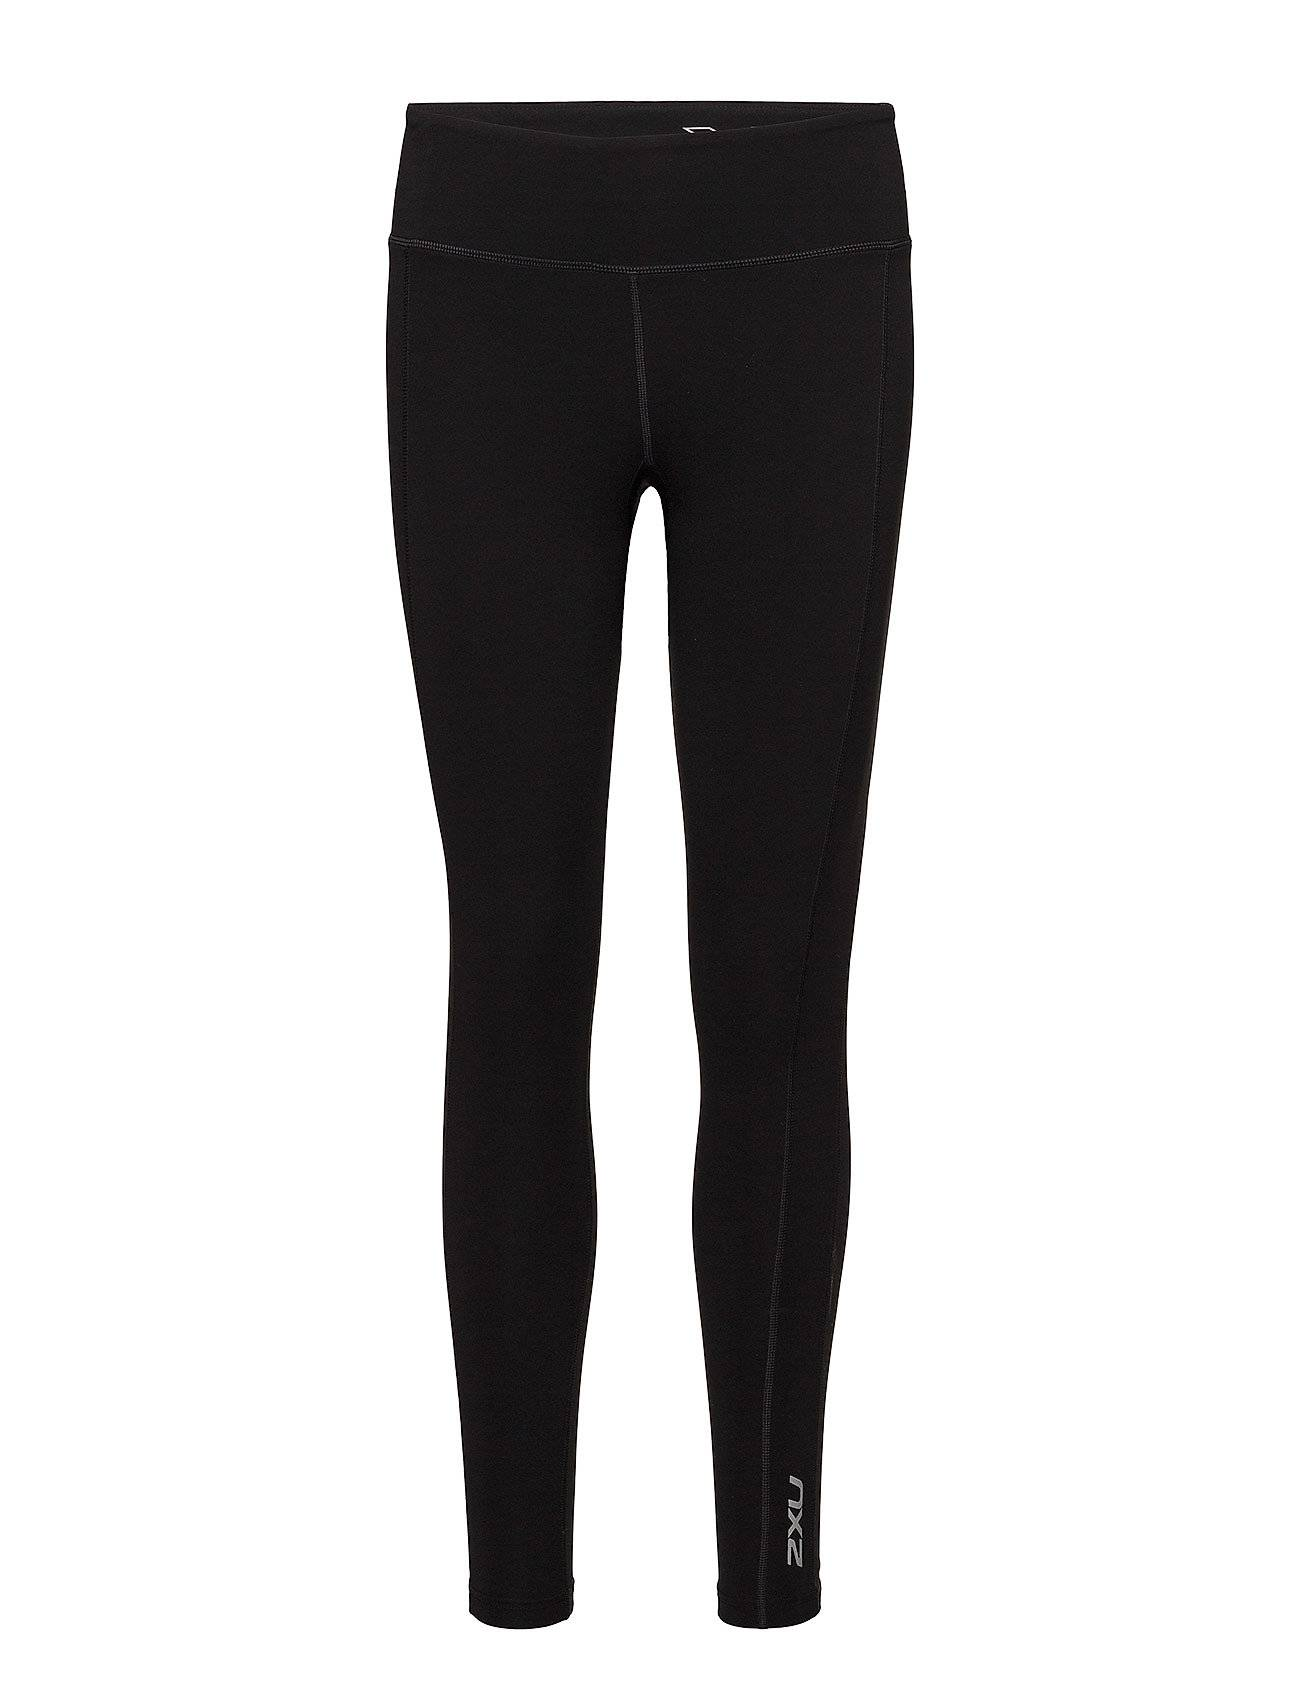 2XU Fitness Compression Tights